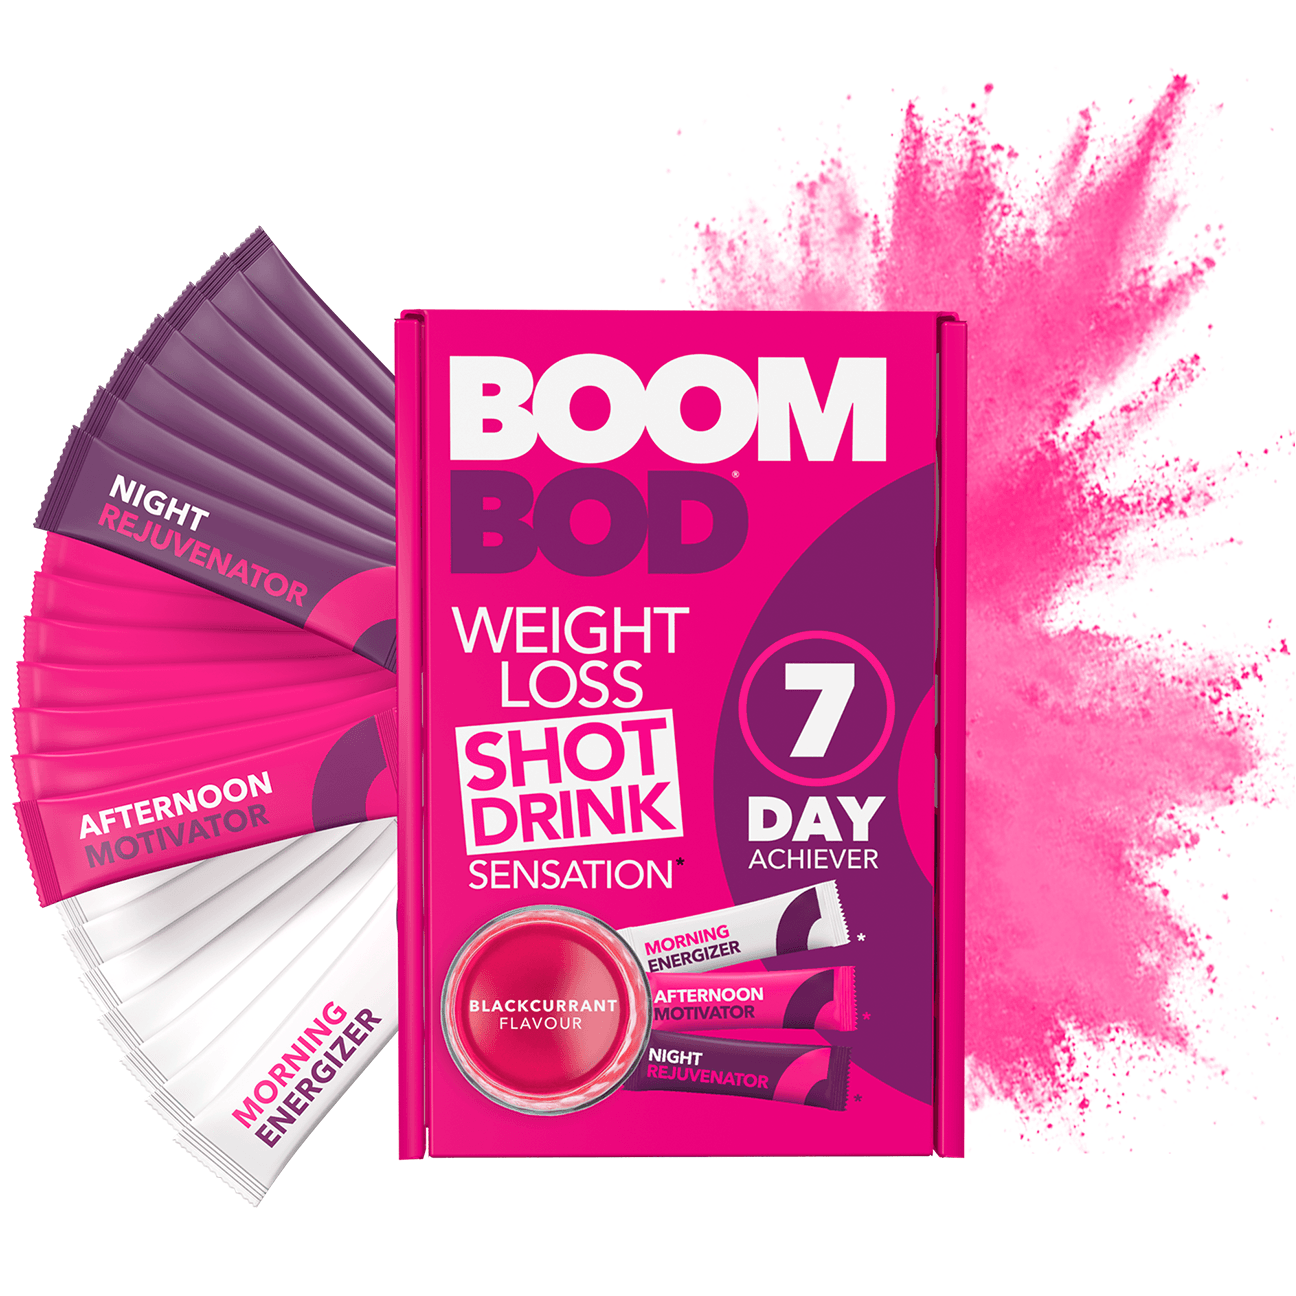 Boombod 7 Day Achiever | Blackcurrant | Weight Loss Shot Drink